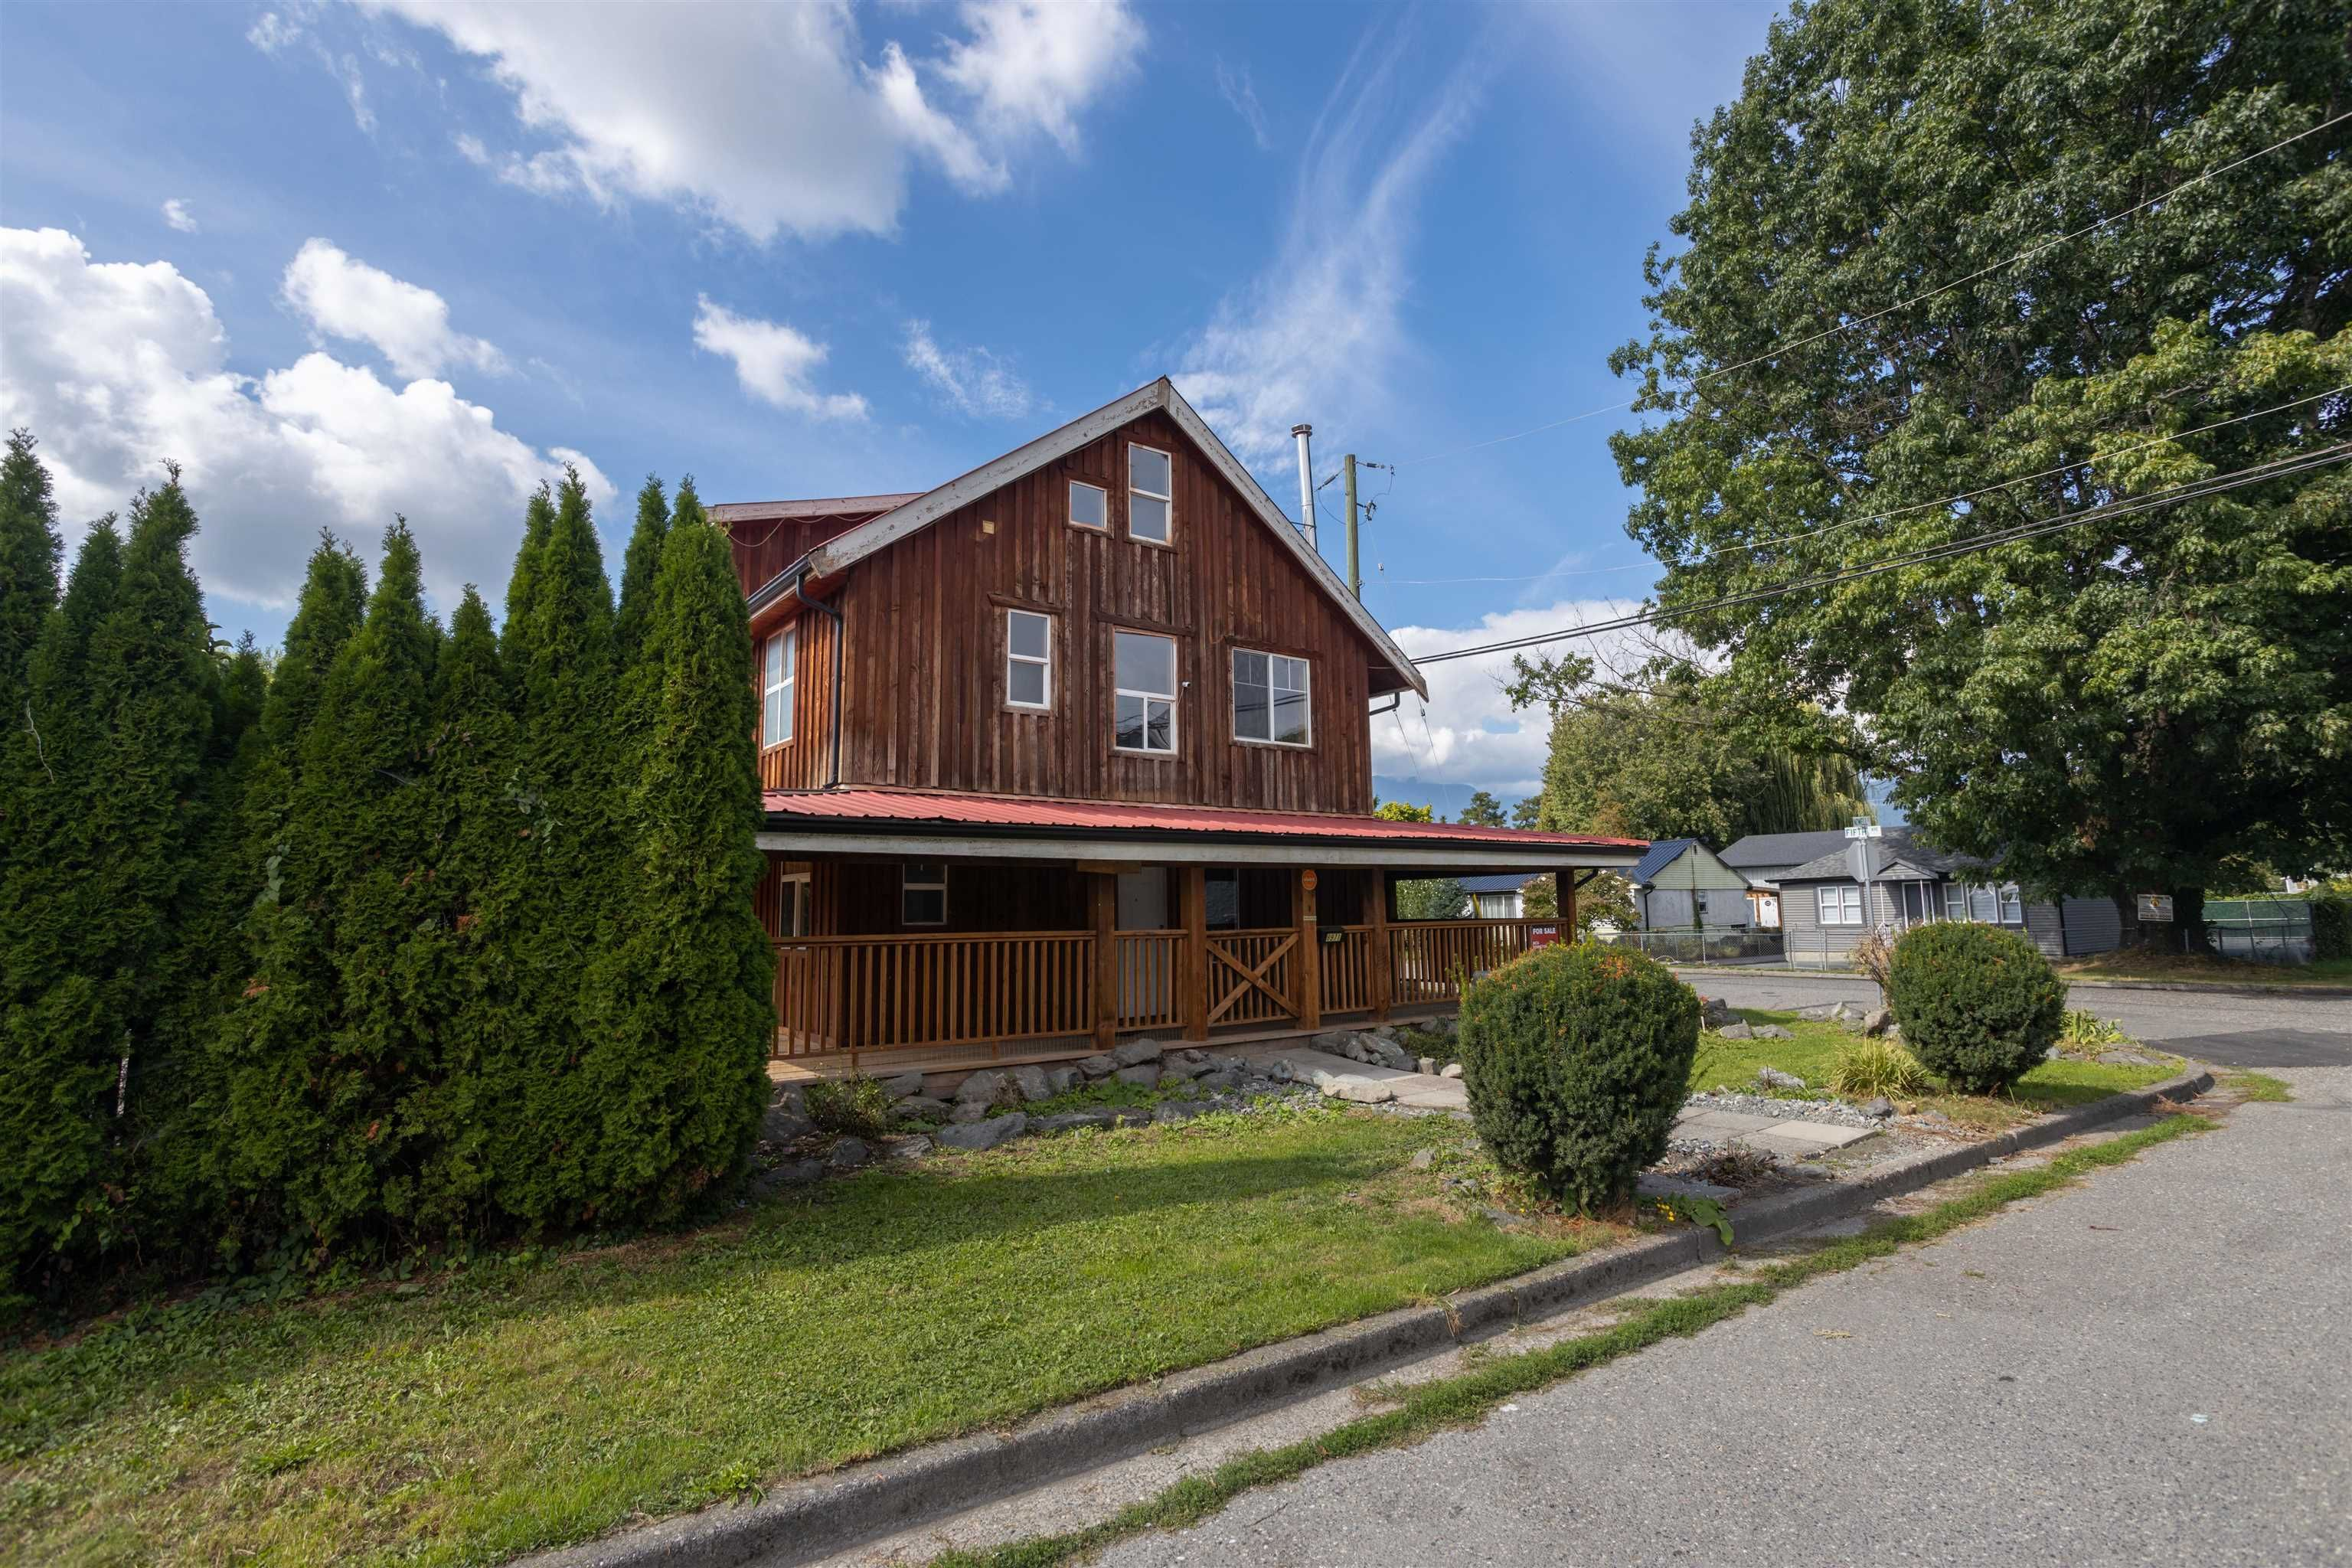 Main Photo: 8971 NOWELL Street in Chilliwack: Chilliwack E Young-Yale House for sale : MLS®# R2617558